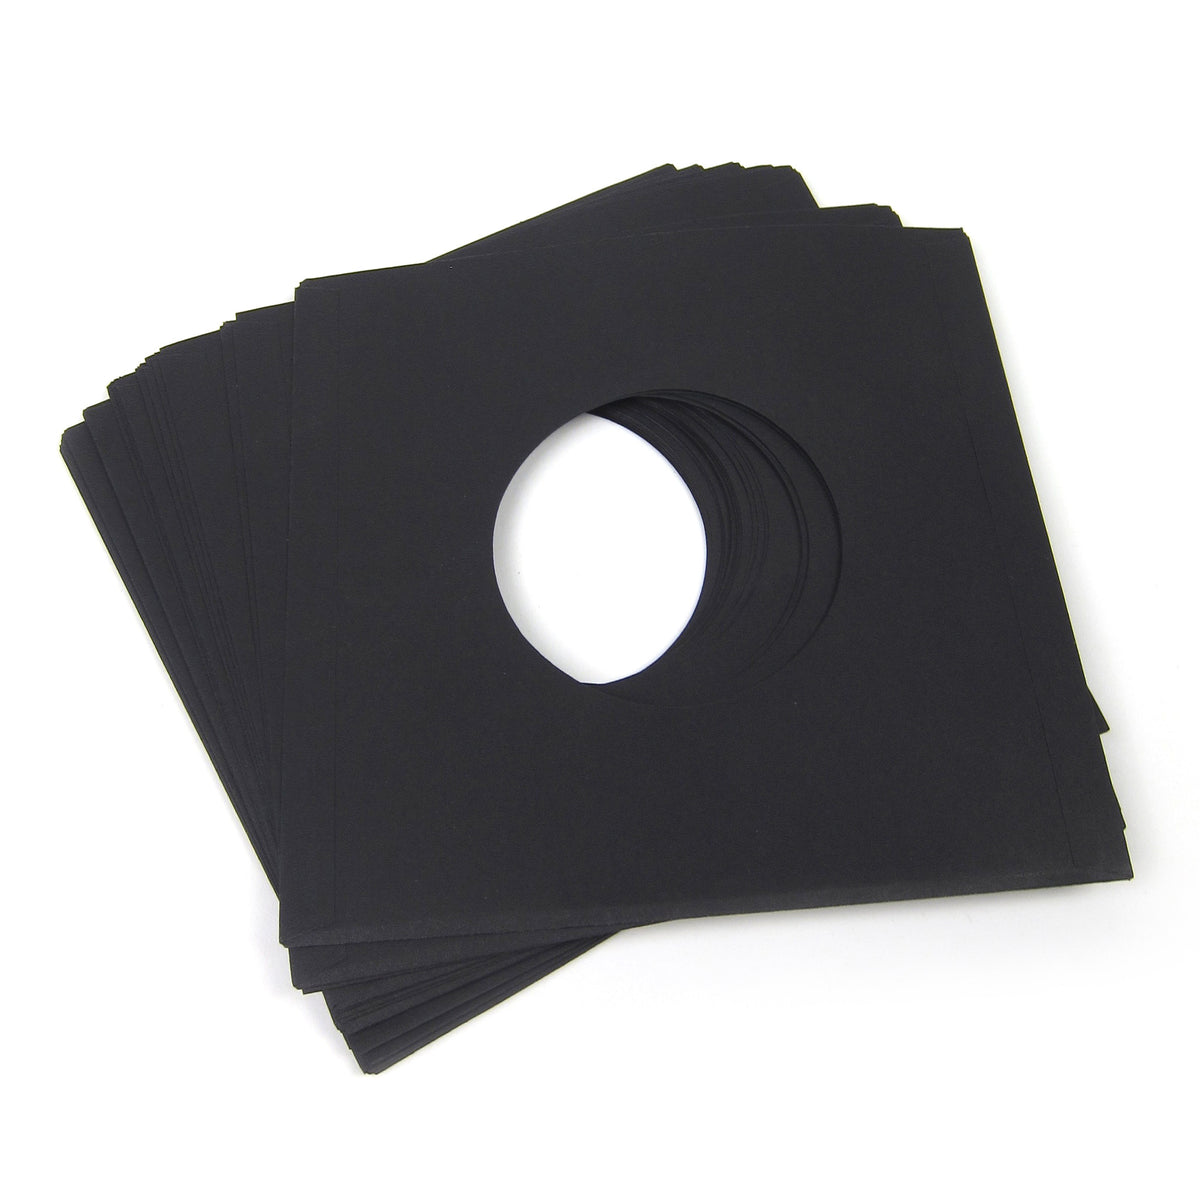 "Record Supply Co.: 7"" Paper Inner Sleeves - Black (20 Units)"